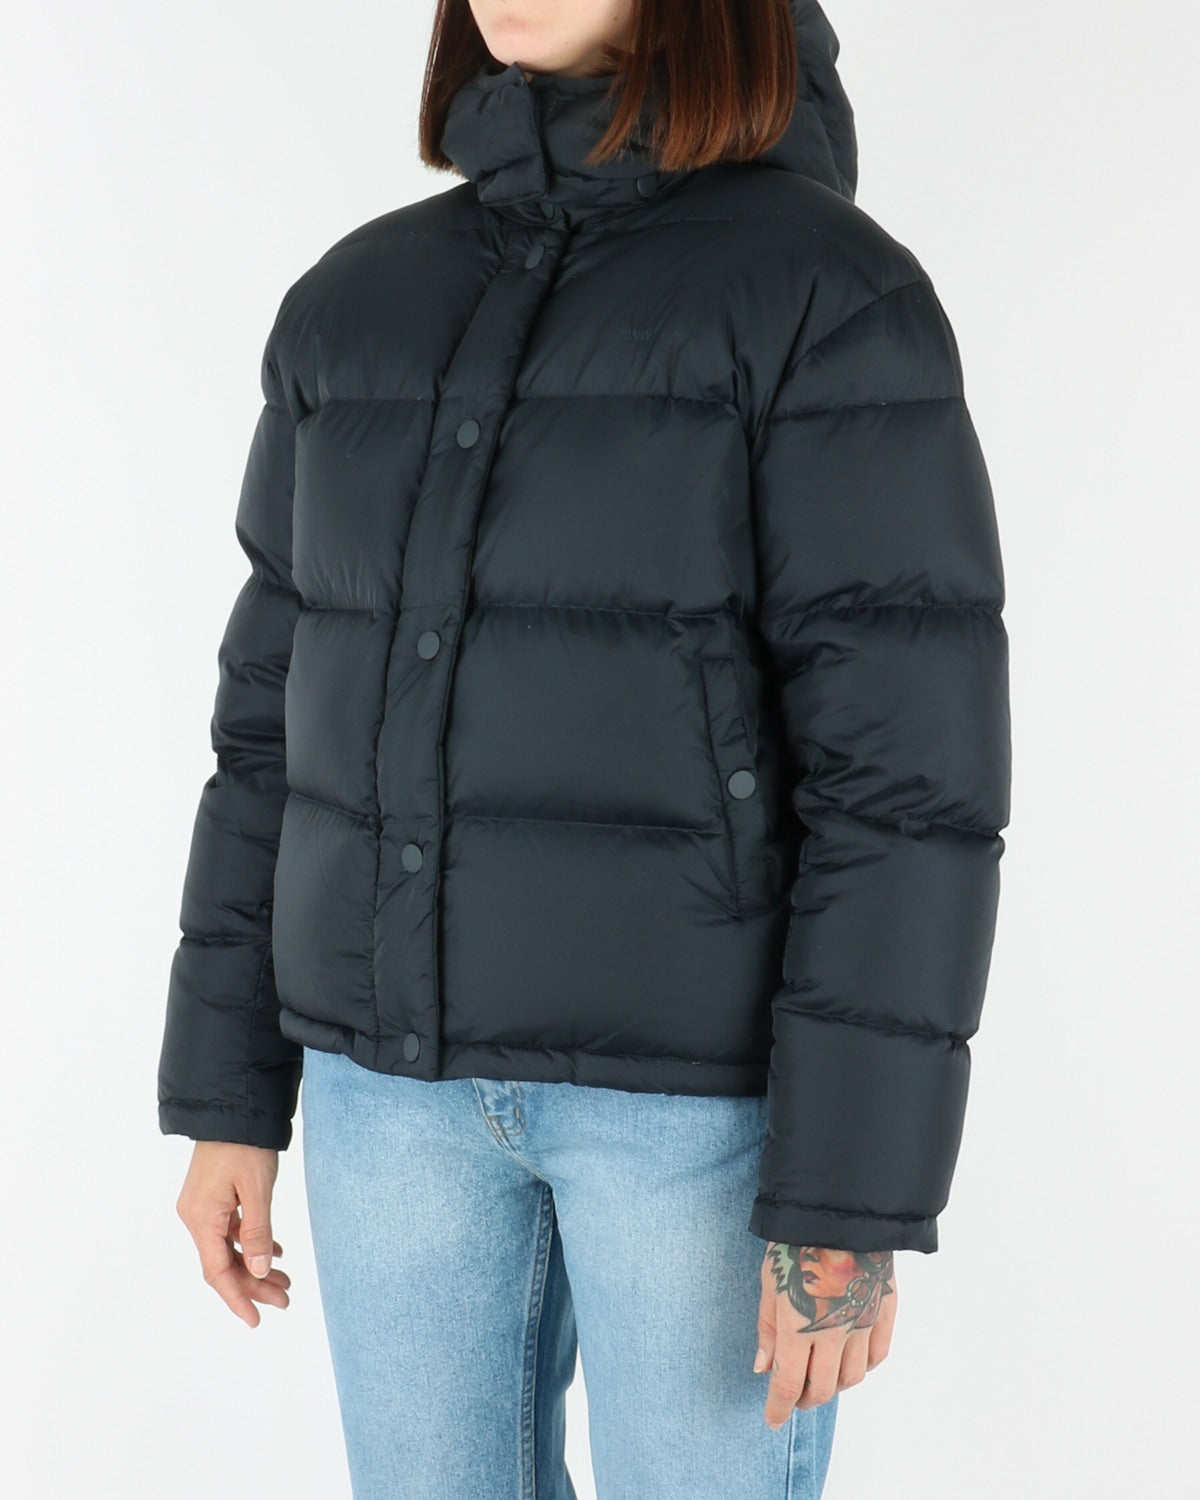 wood wood_alyssa_jacket_navy_view_3_4